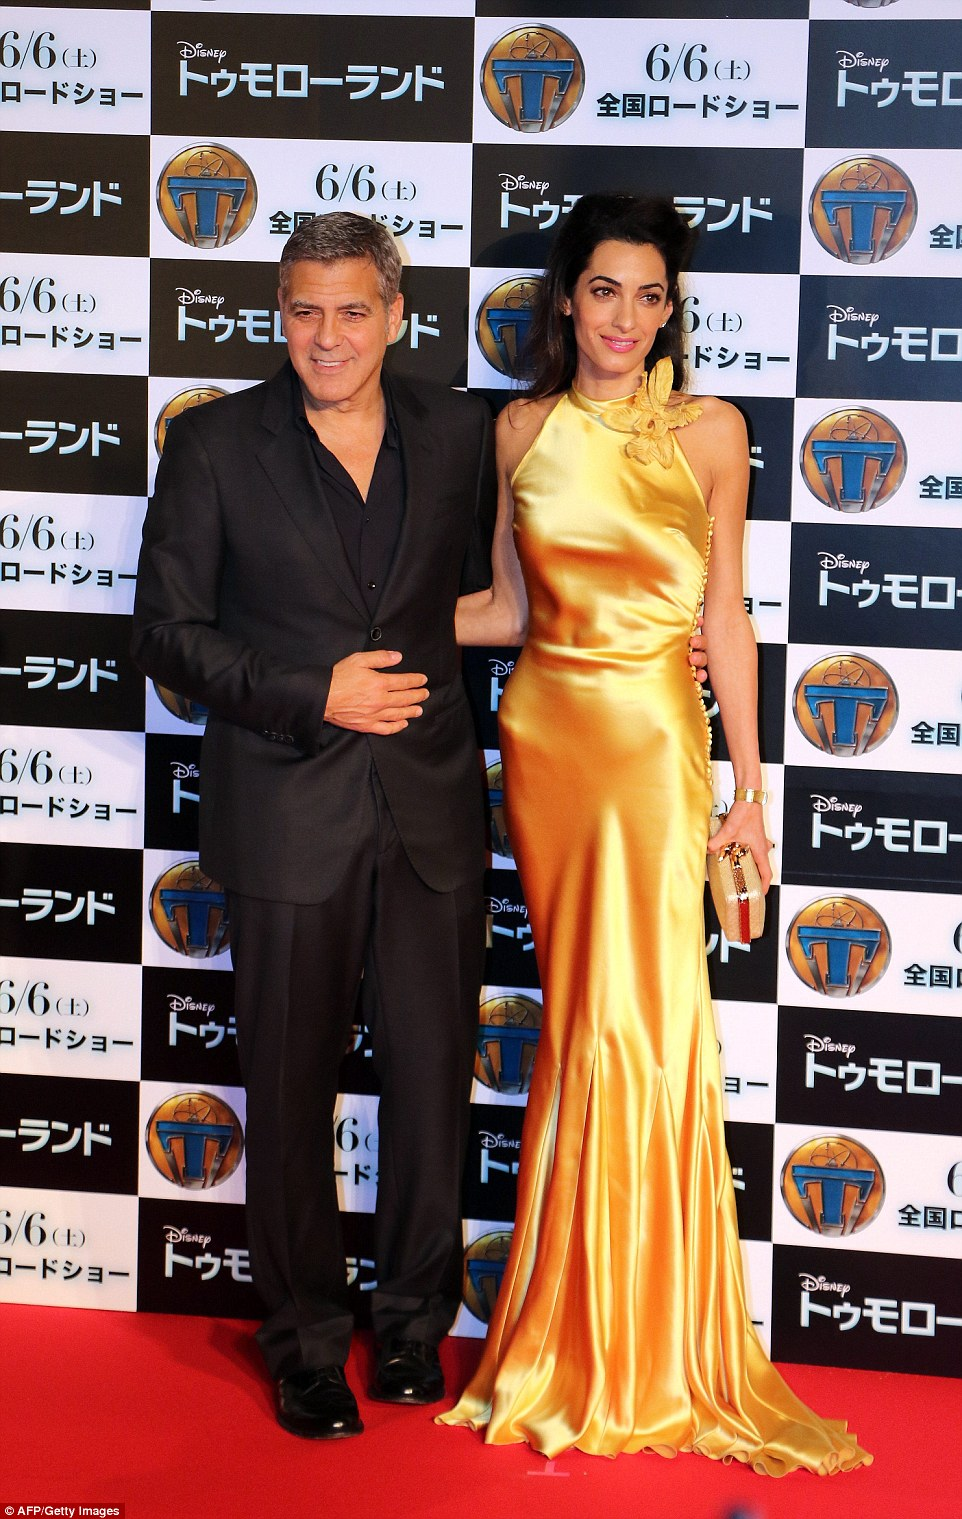 George and Amal Clooney pose for a picture on the red carpet at the Japan premiere of his movie Tomorrowland in Tokyo in May this year